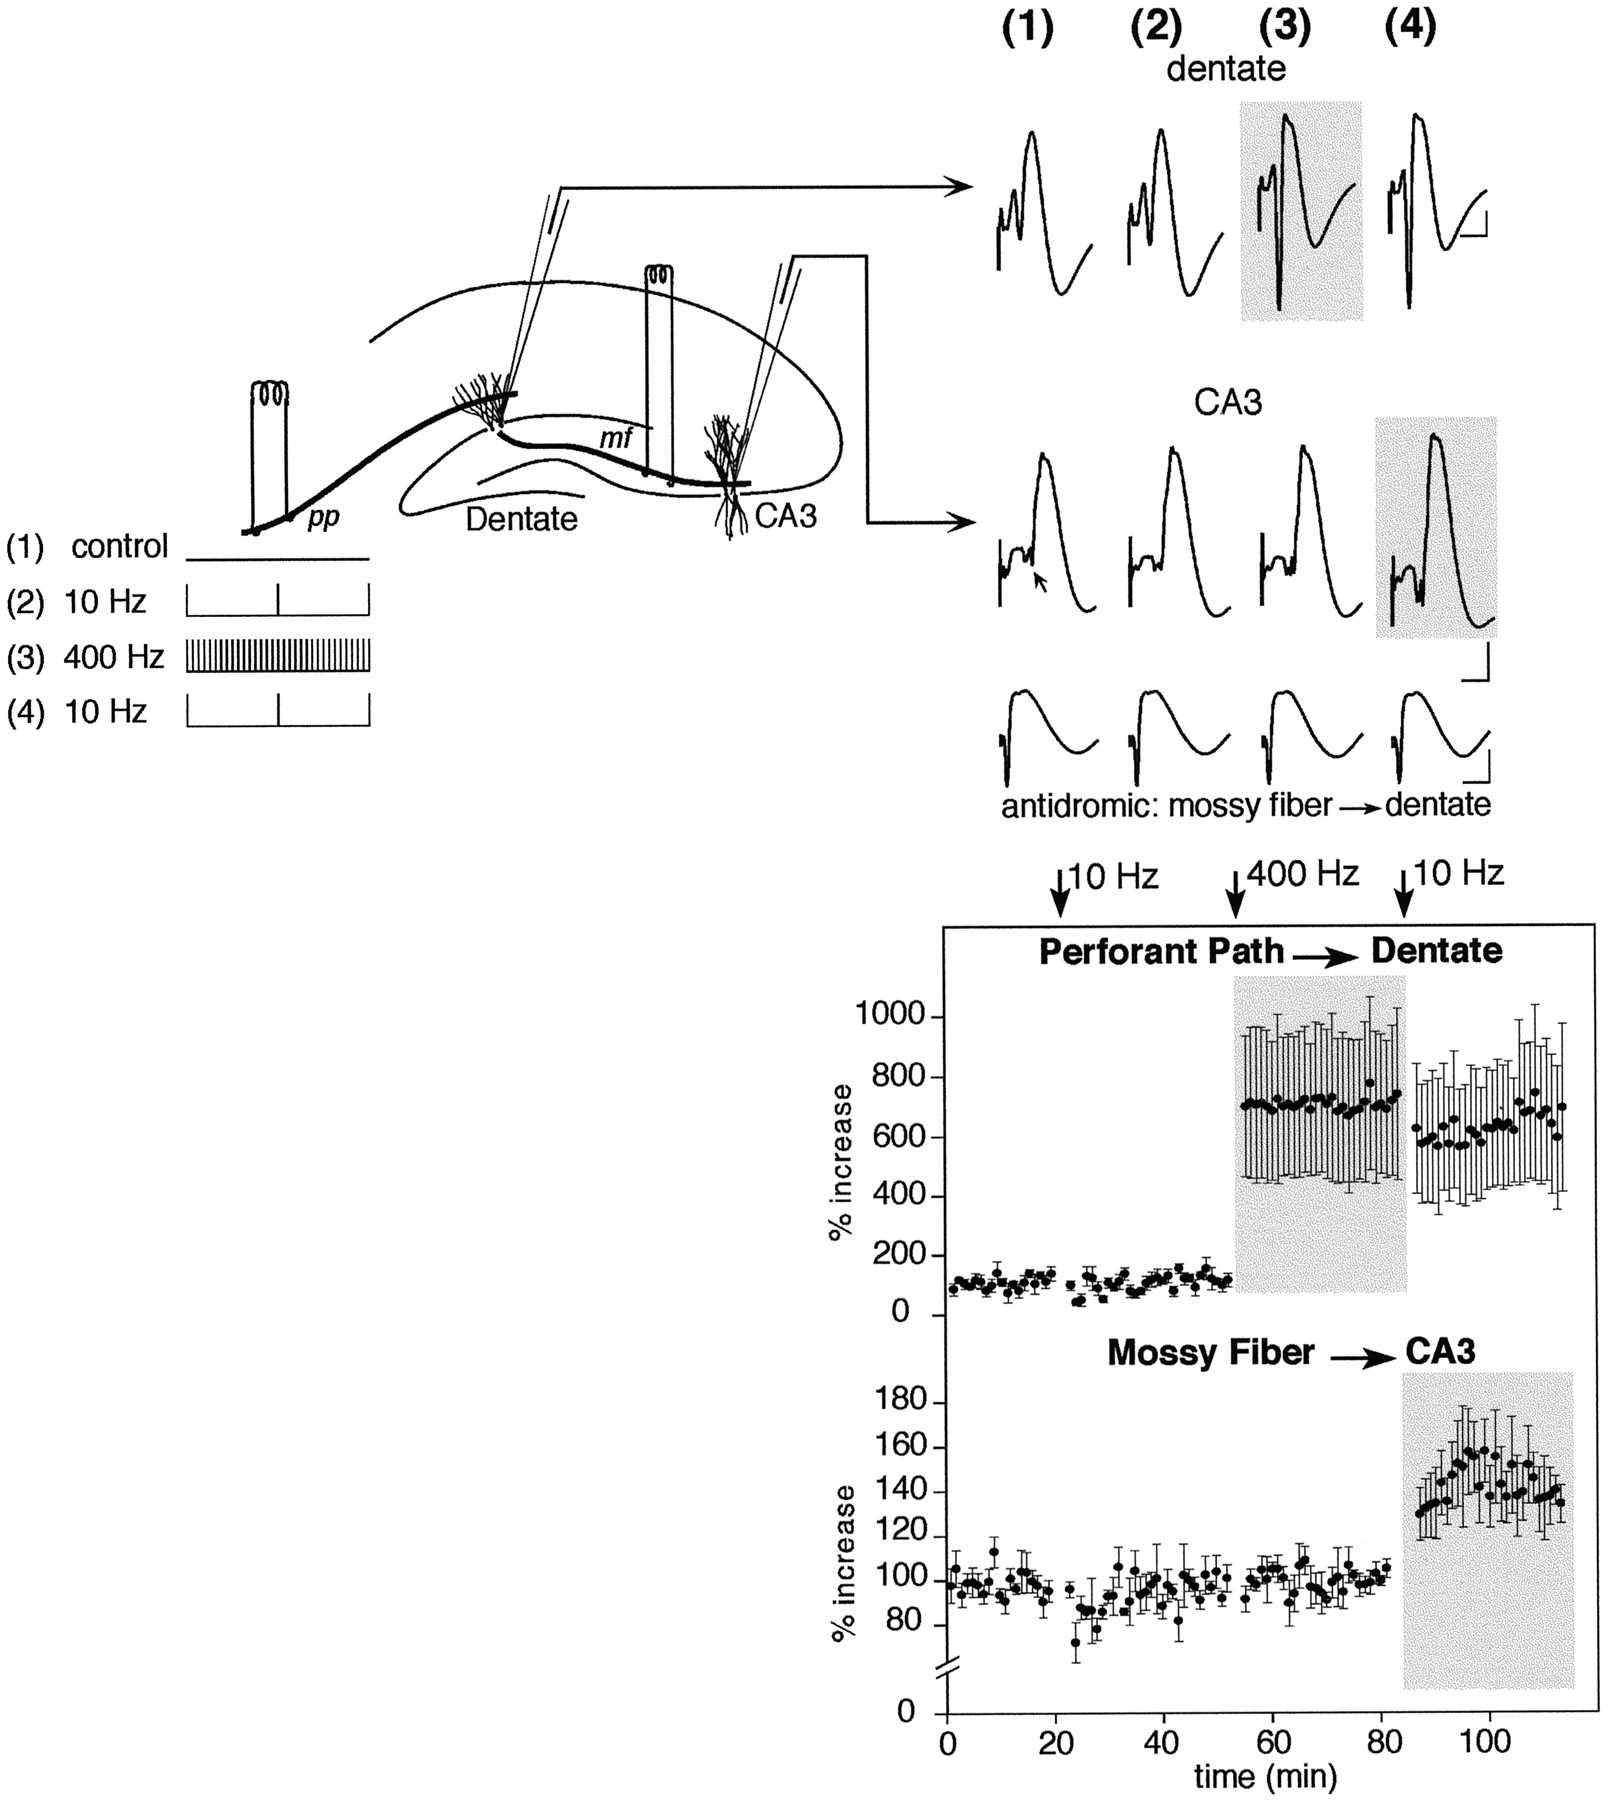 Spatial Distribution of Potentiated Synapses in Hippocampus